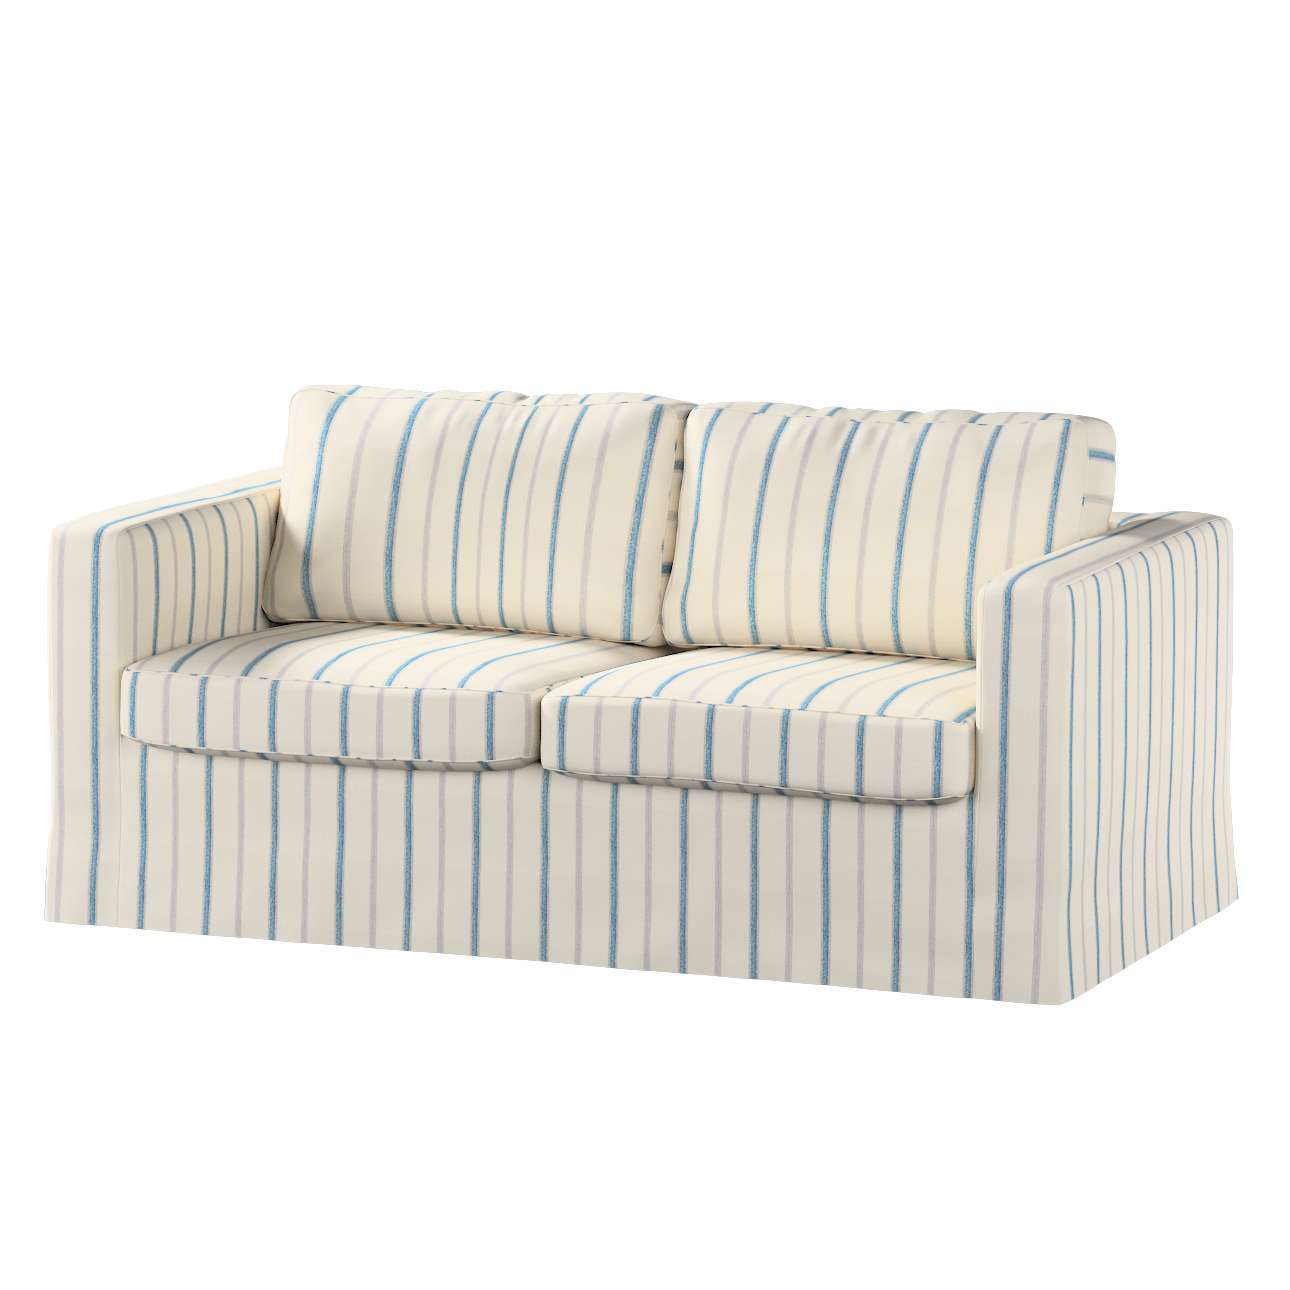 Floor length Karlstad 2-seater sofa cover in collection Avinon, fabric: 129-66